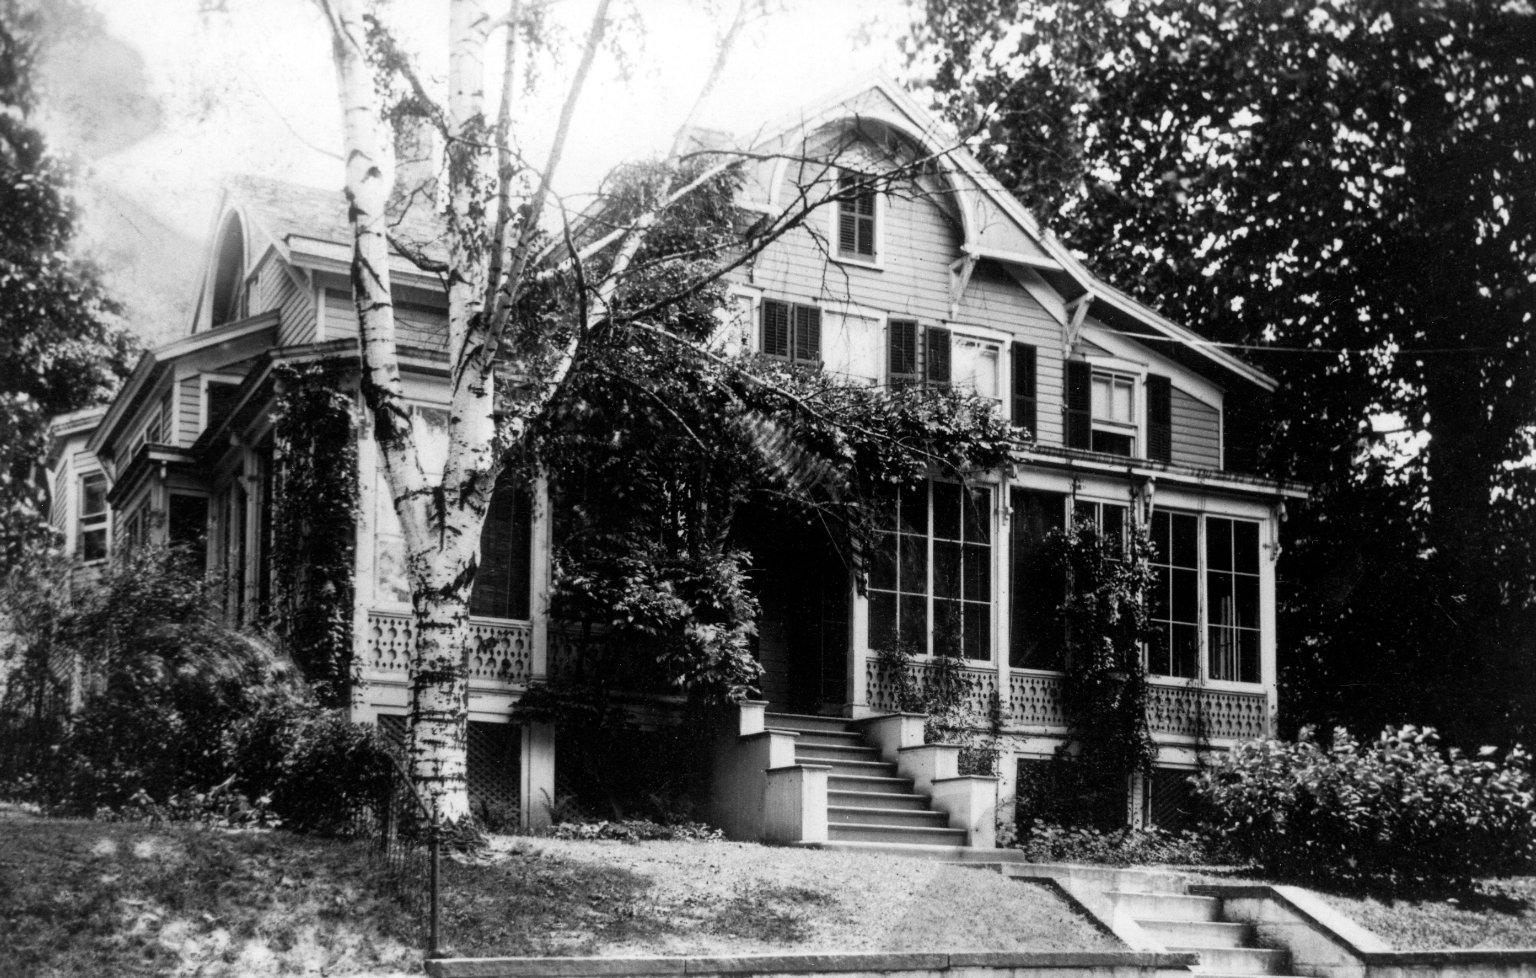 Ruth Underhill's Childhood Home